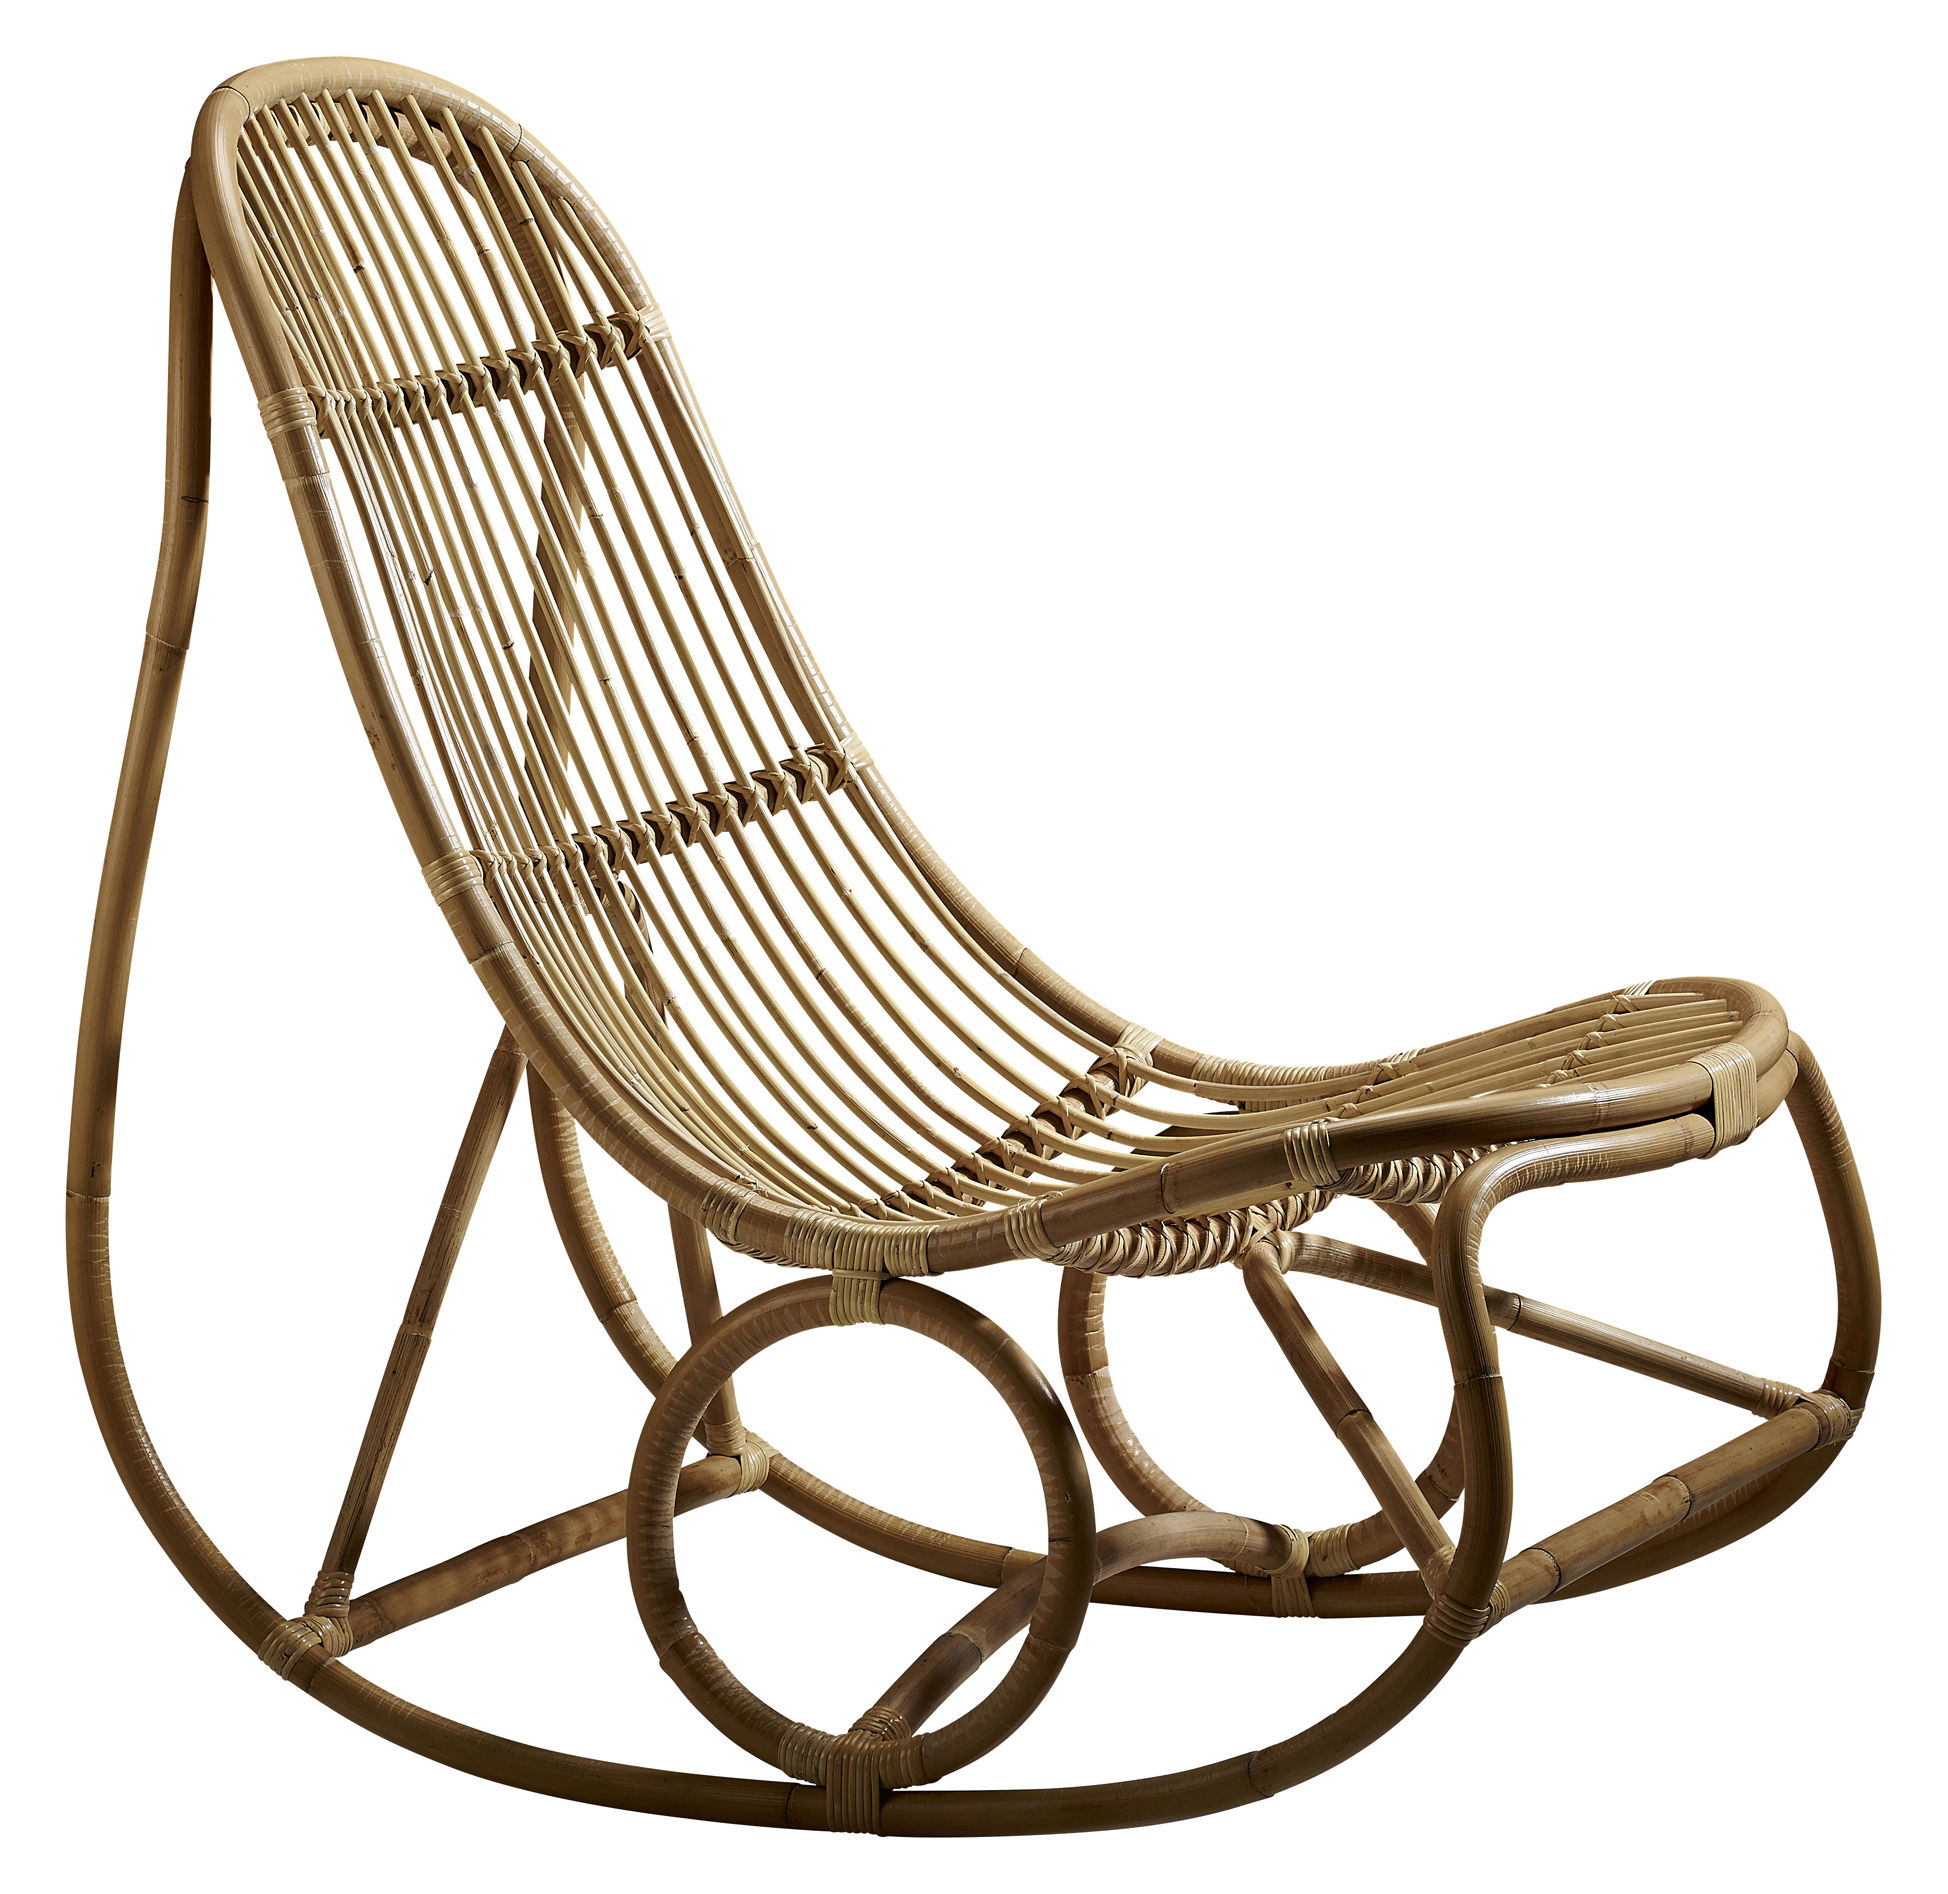 Furniture - Armchairs - Nanny Rocking chair - Reissue 1969 by Sika Design - Natural - Rattan